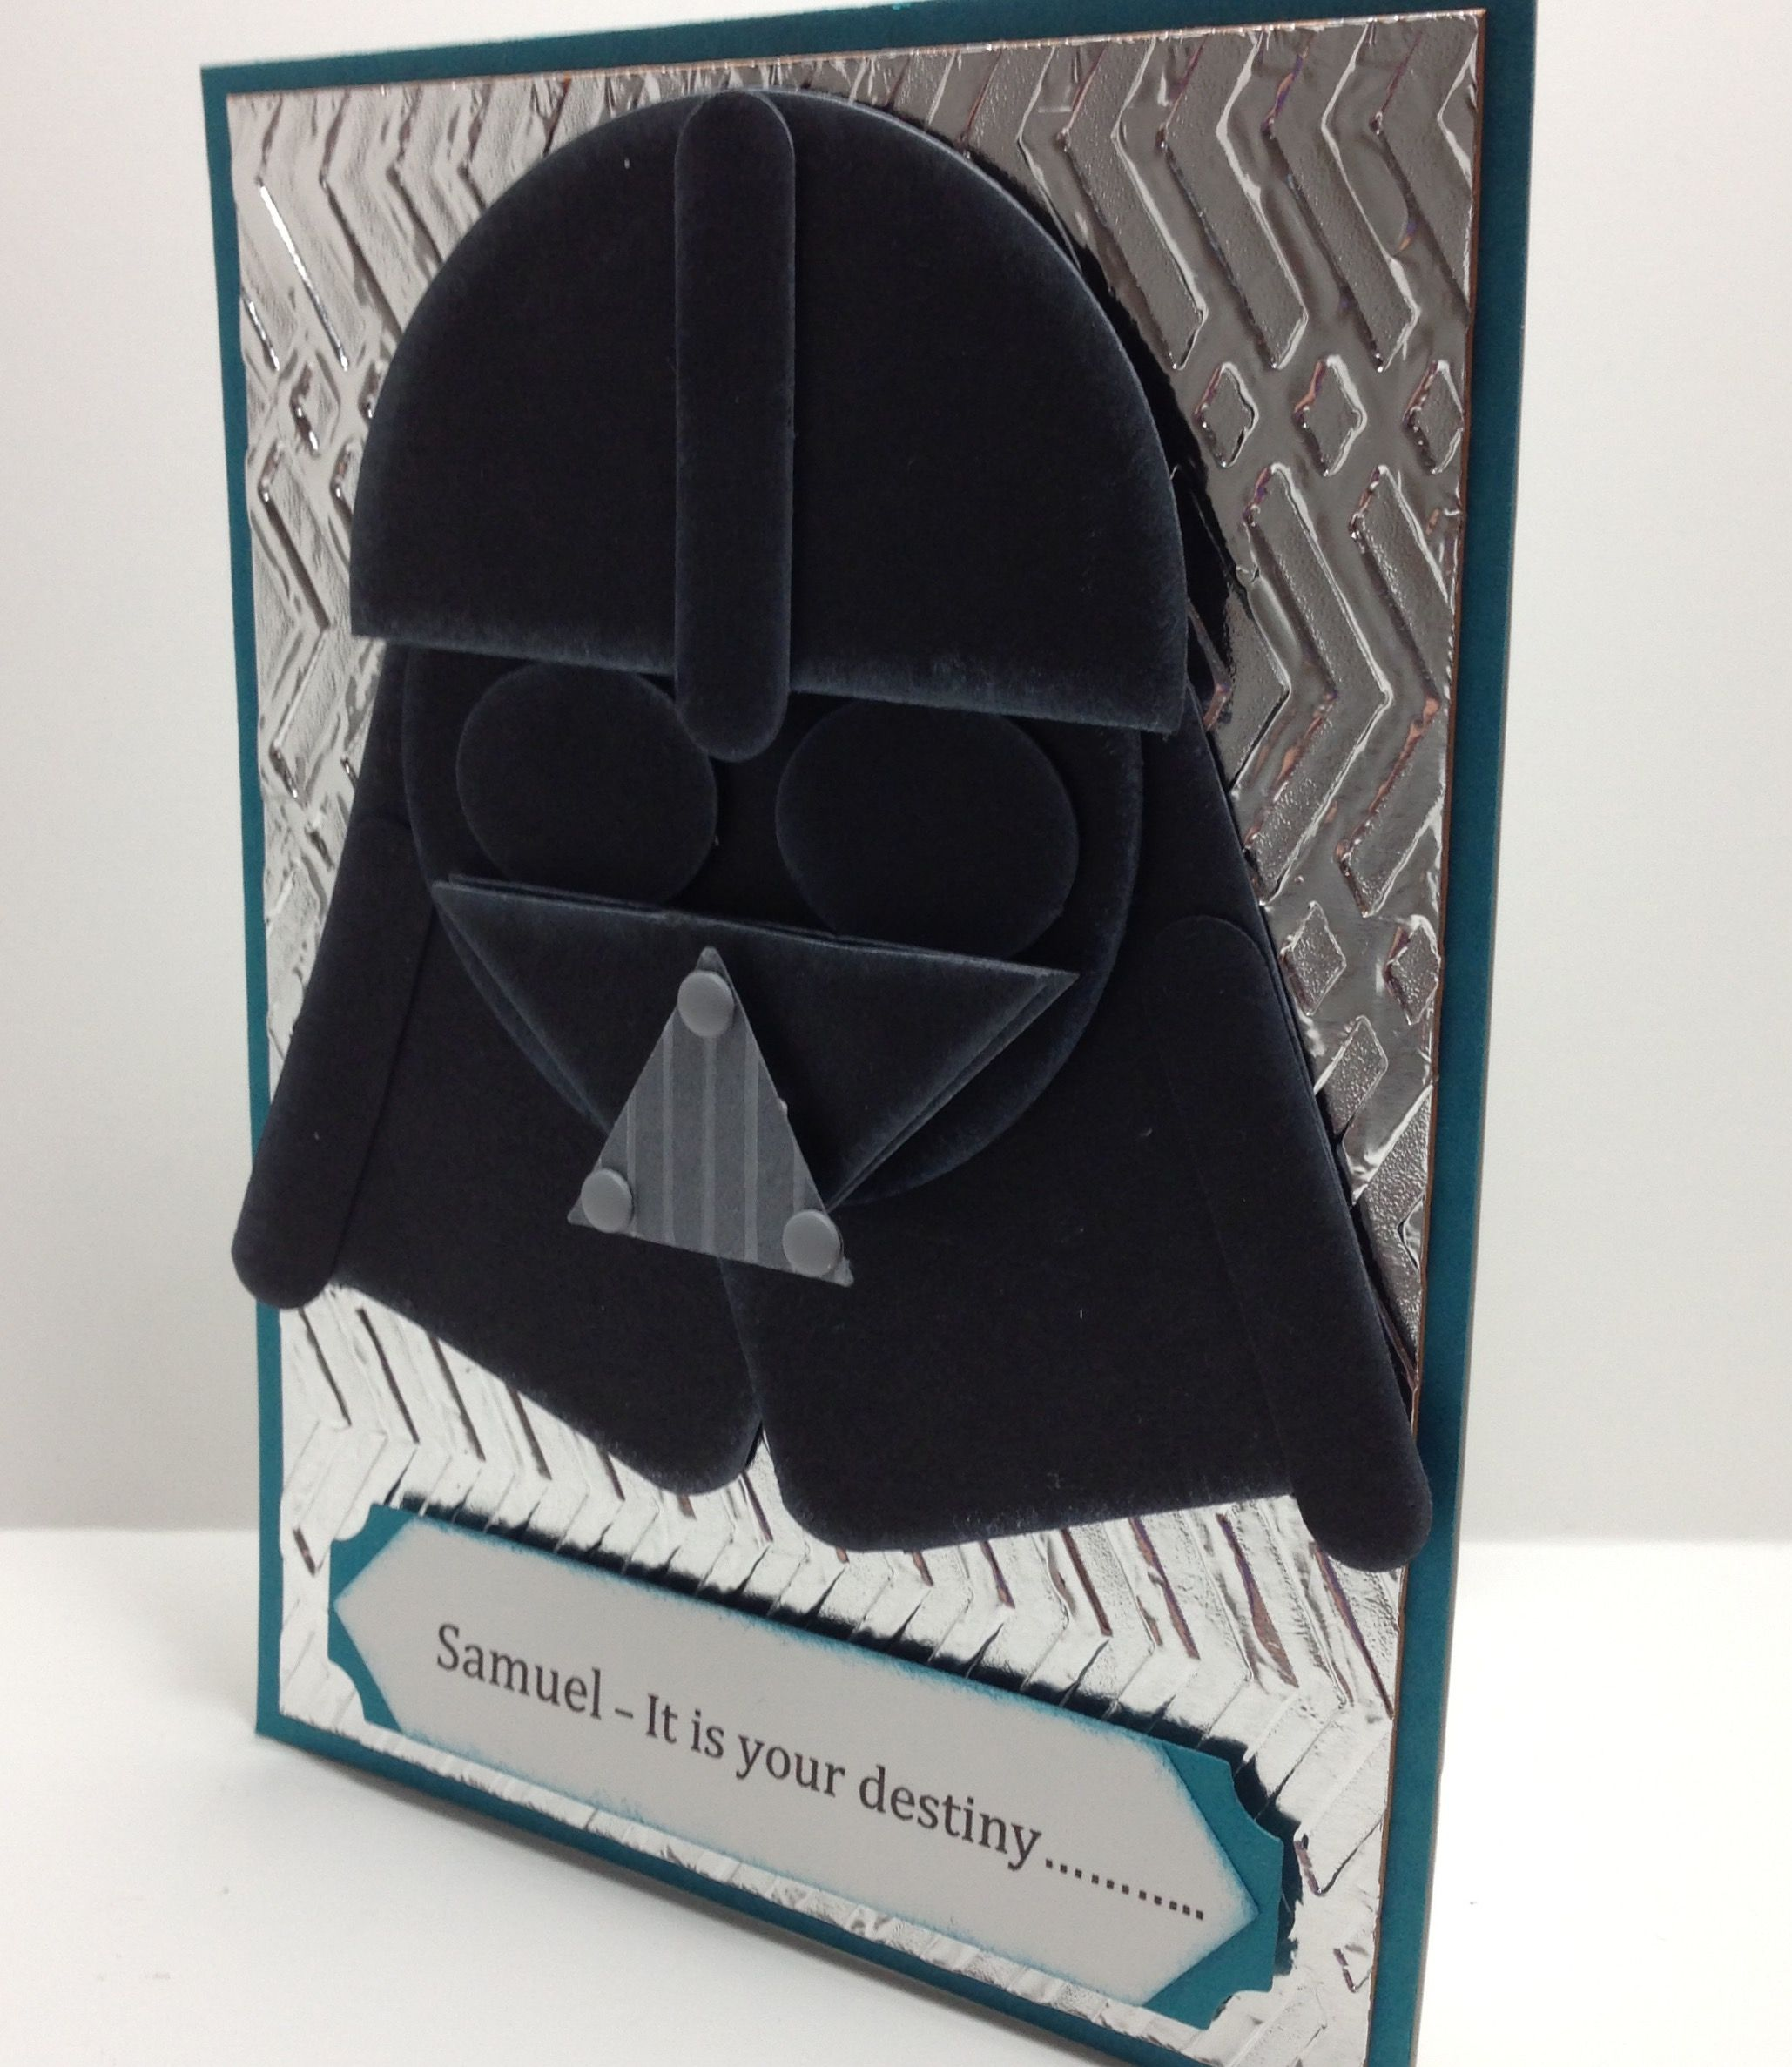 Darth Vader Punch Card for Samuel - Embossed foil Zig Zag TIEF, Island Indigo, Vanilla, Basic Black, Project Life Framelits, Word Window, Triangle, Corner Rounder, Small Oval, Circle Punches